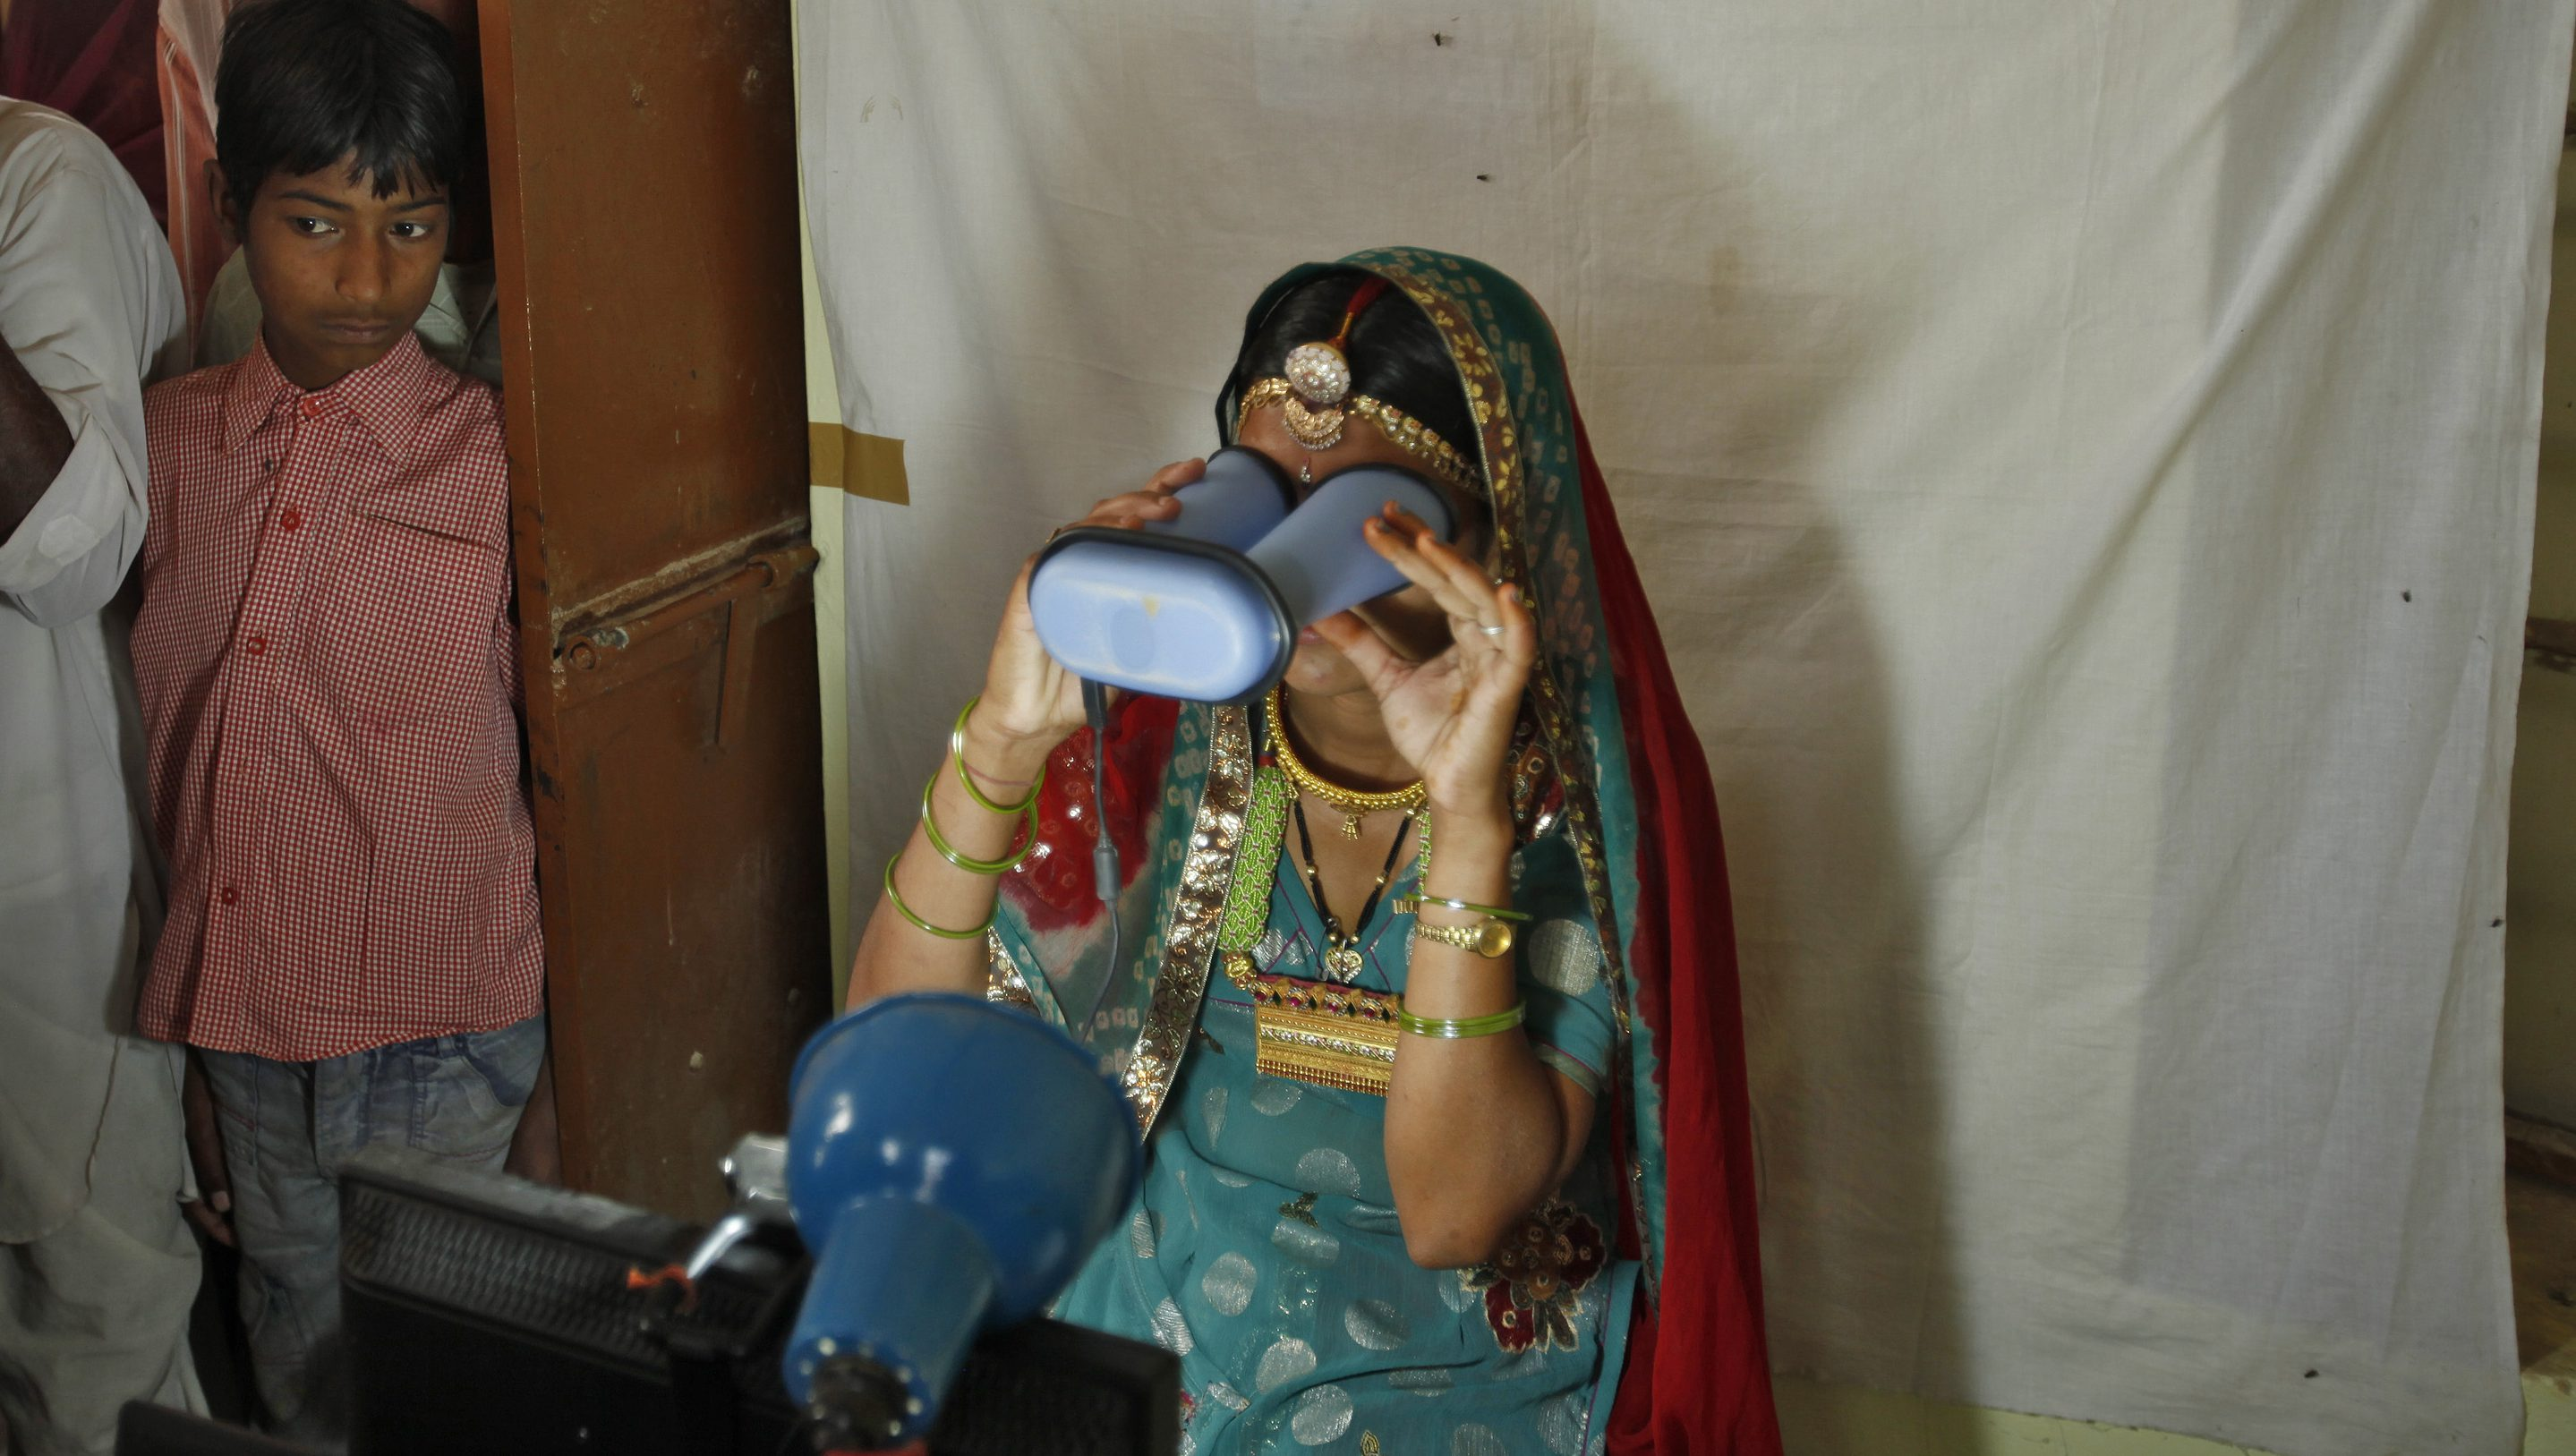 A villager goes through the process of eye scanning for Unique Identification (UID) database system at an enrolment centre at Merta district in the desert Indian state of Rajasthan February 21, 2013.In a more ambitious version of programmes that have slashed poverty in Brazil and Mexico, the Indian government has begun to use the UID database, known as Aadhaar, to make direct cash transfers to the poor, in an attempt to cut out frauds who siphon billions of dollars from welfare schemes. Picture taken February 21, 2013. REUTERS/Mansi Thapliyal (INDIA - Tags: BUSINESS SOCIETY POVERTY SCIENCE TECHNOLOGY) - GM1E92S1B1001